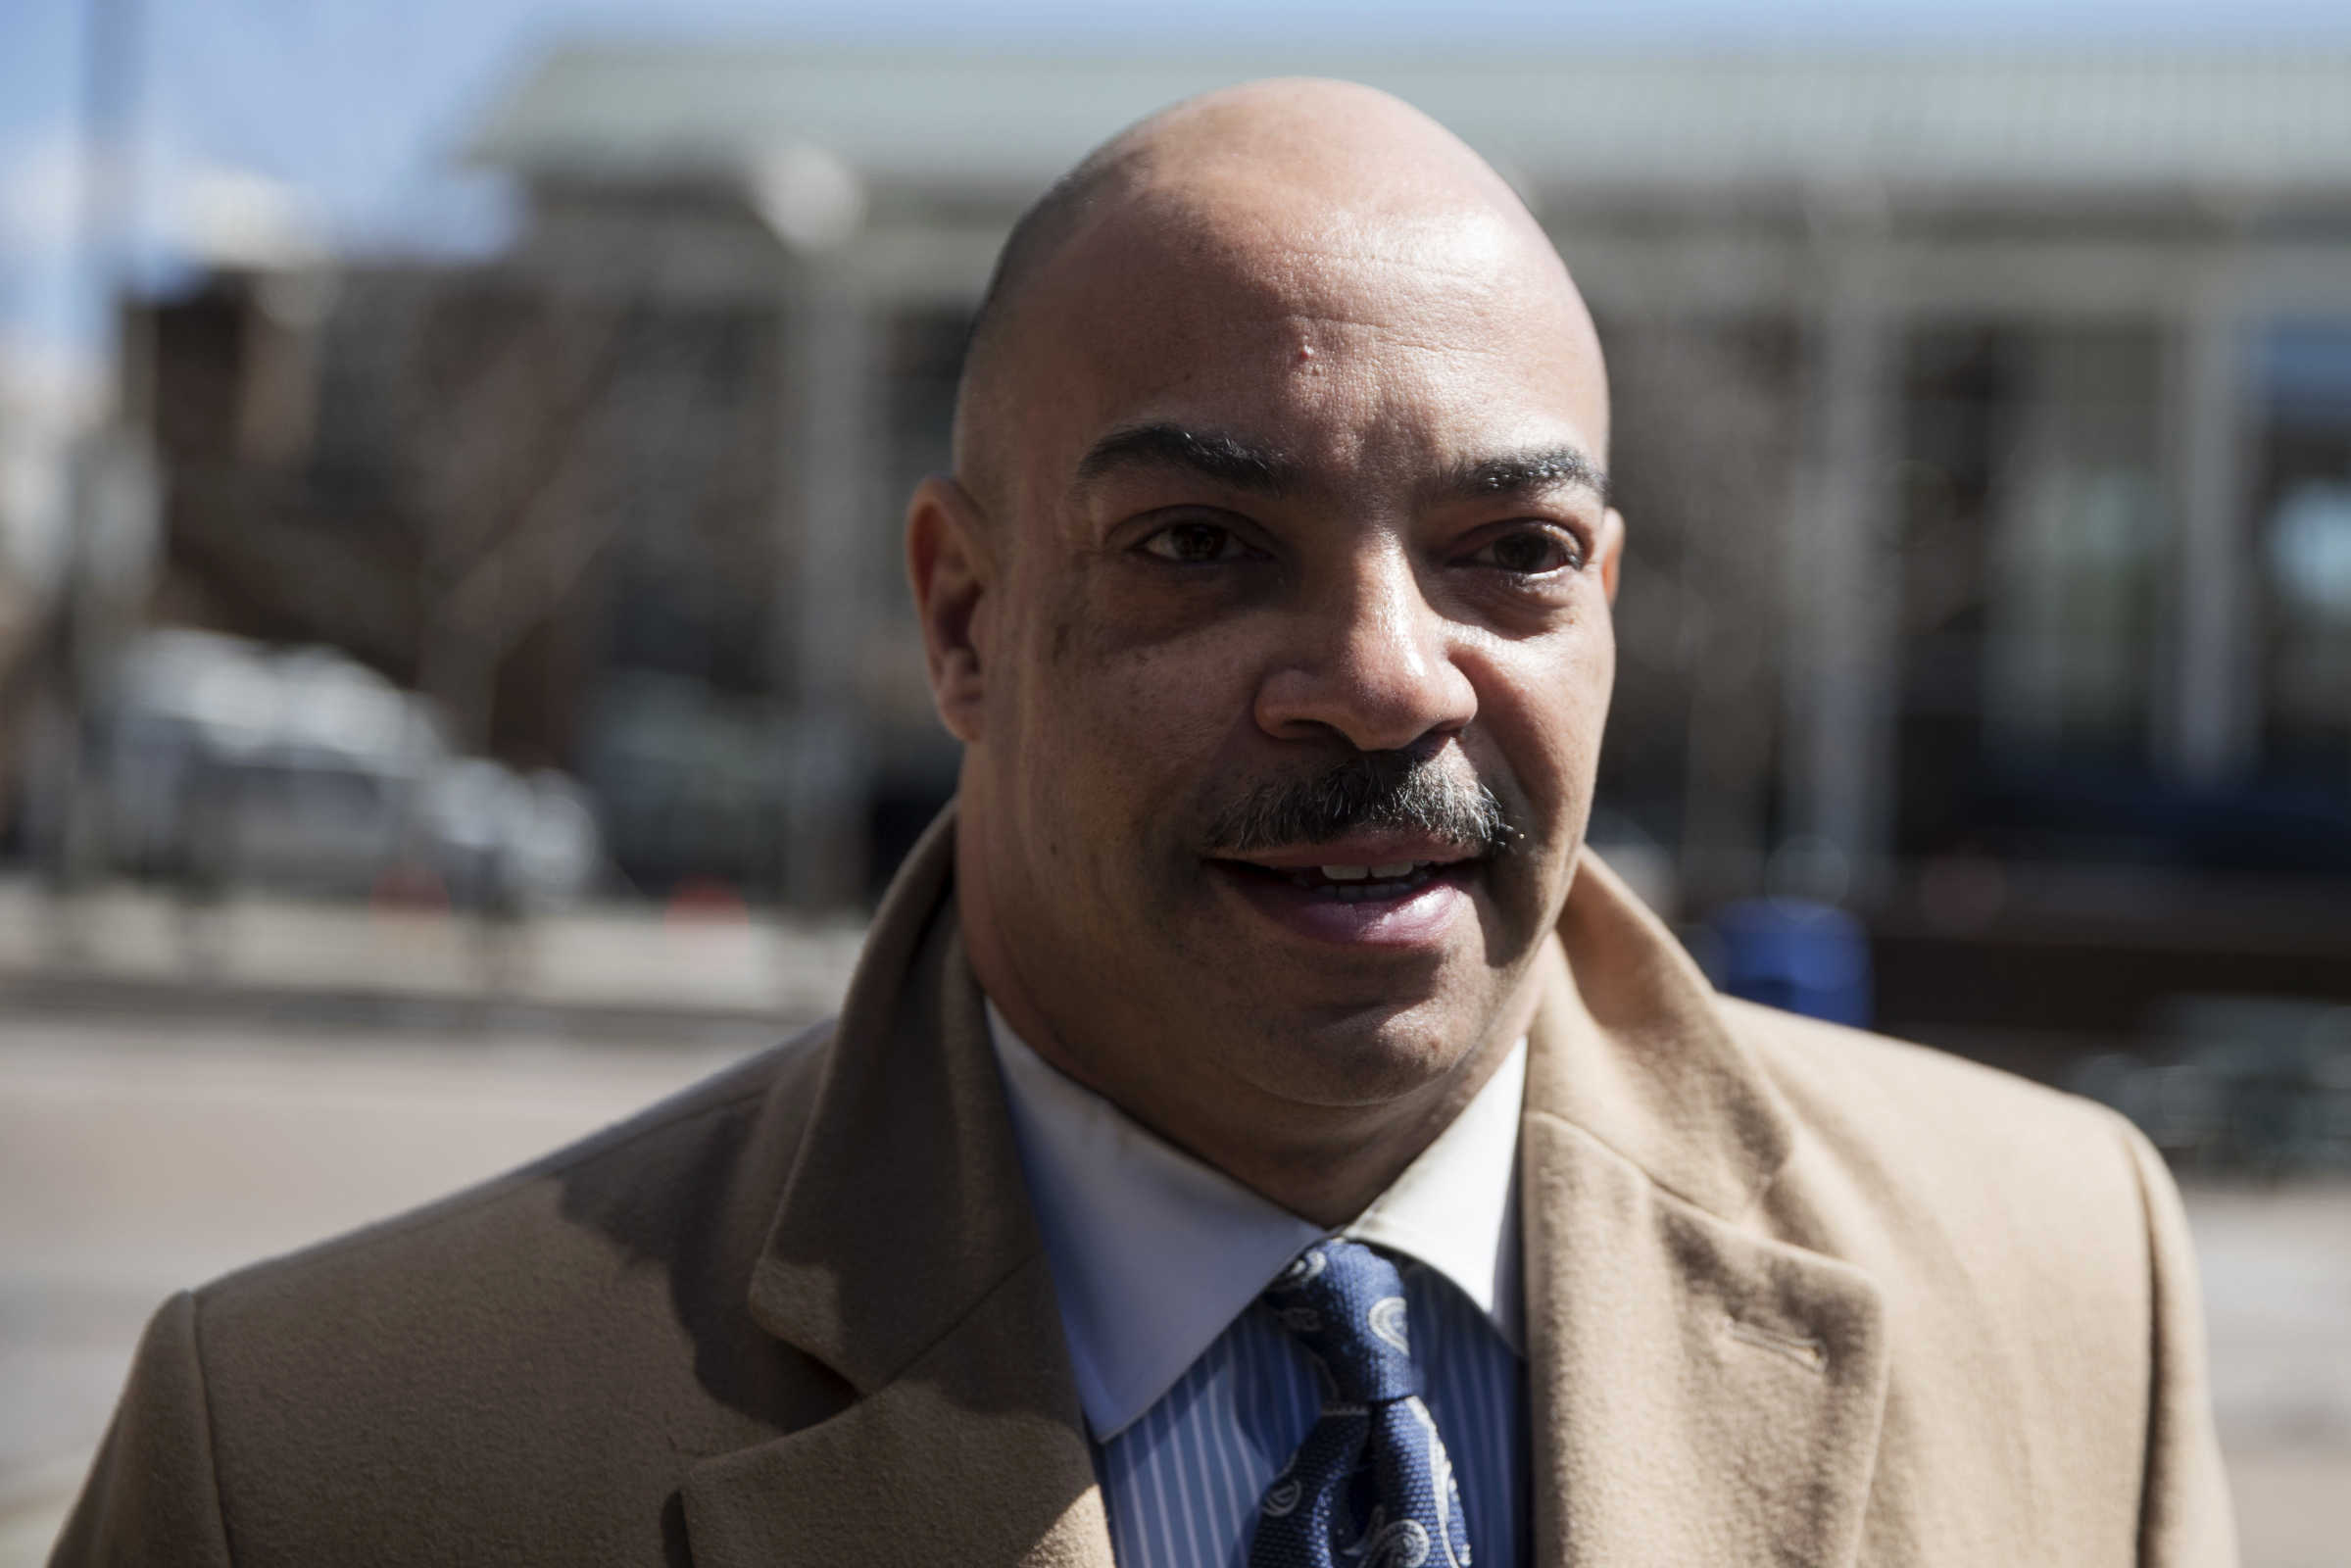 Philadelphia District Attorney Seth Williams was arraigned Wednesday on bribery and extortion charges. (AP Photo / Matt Rourke)